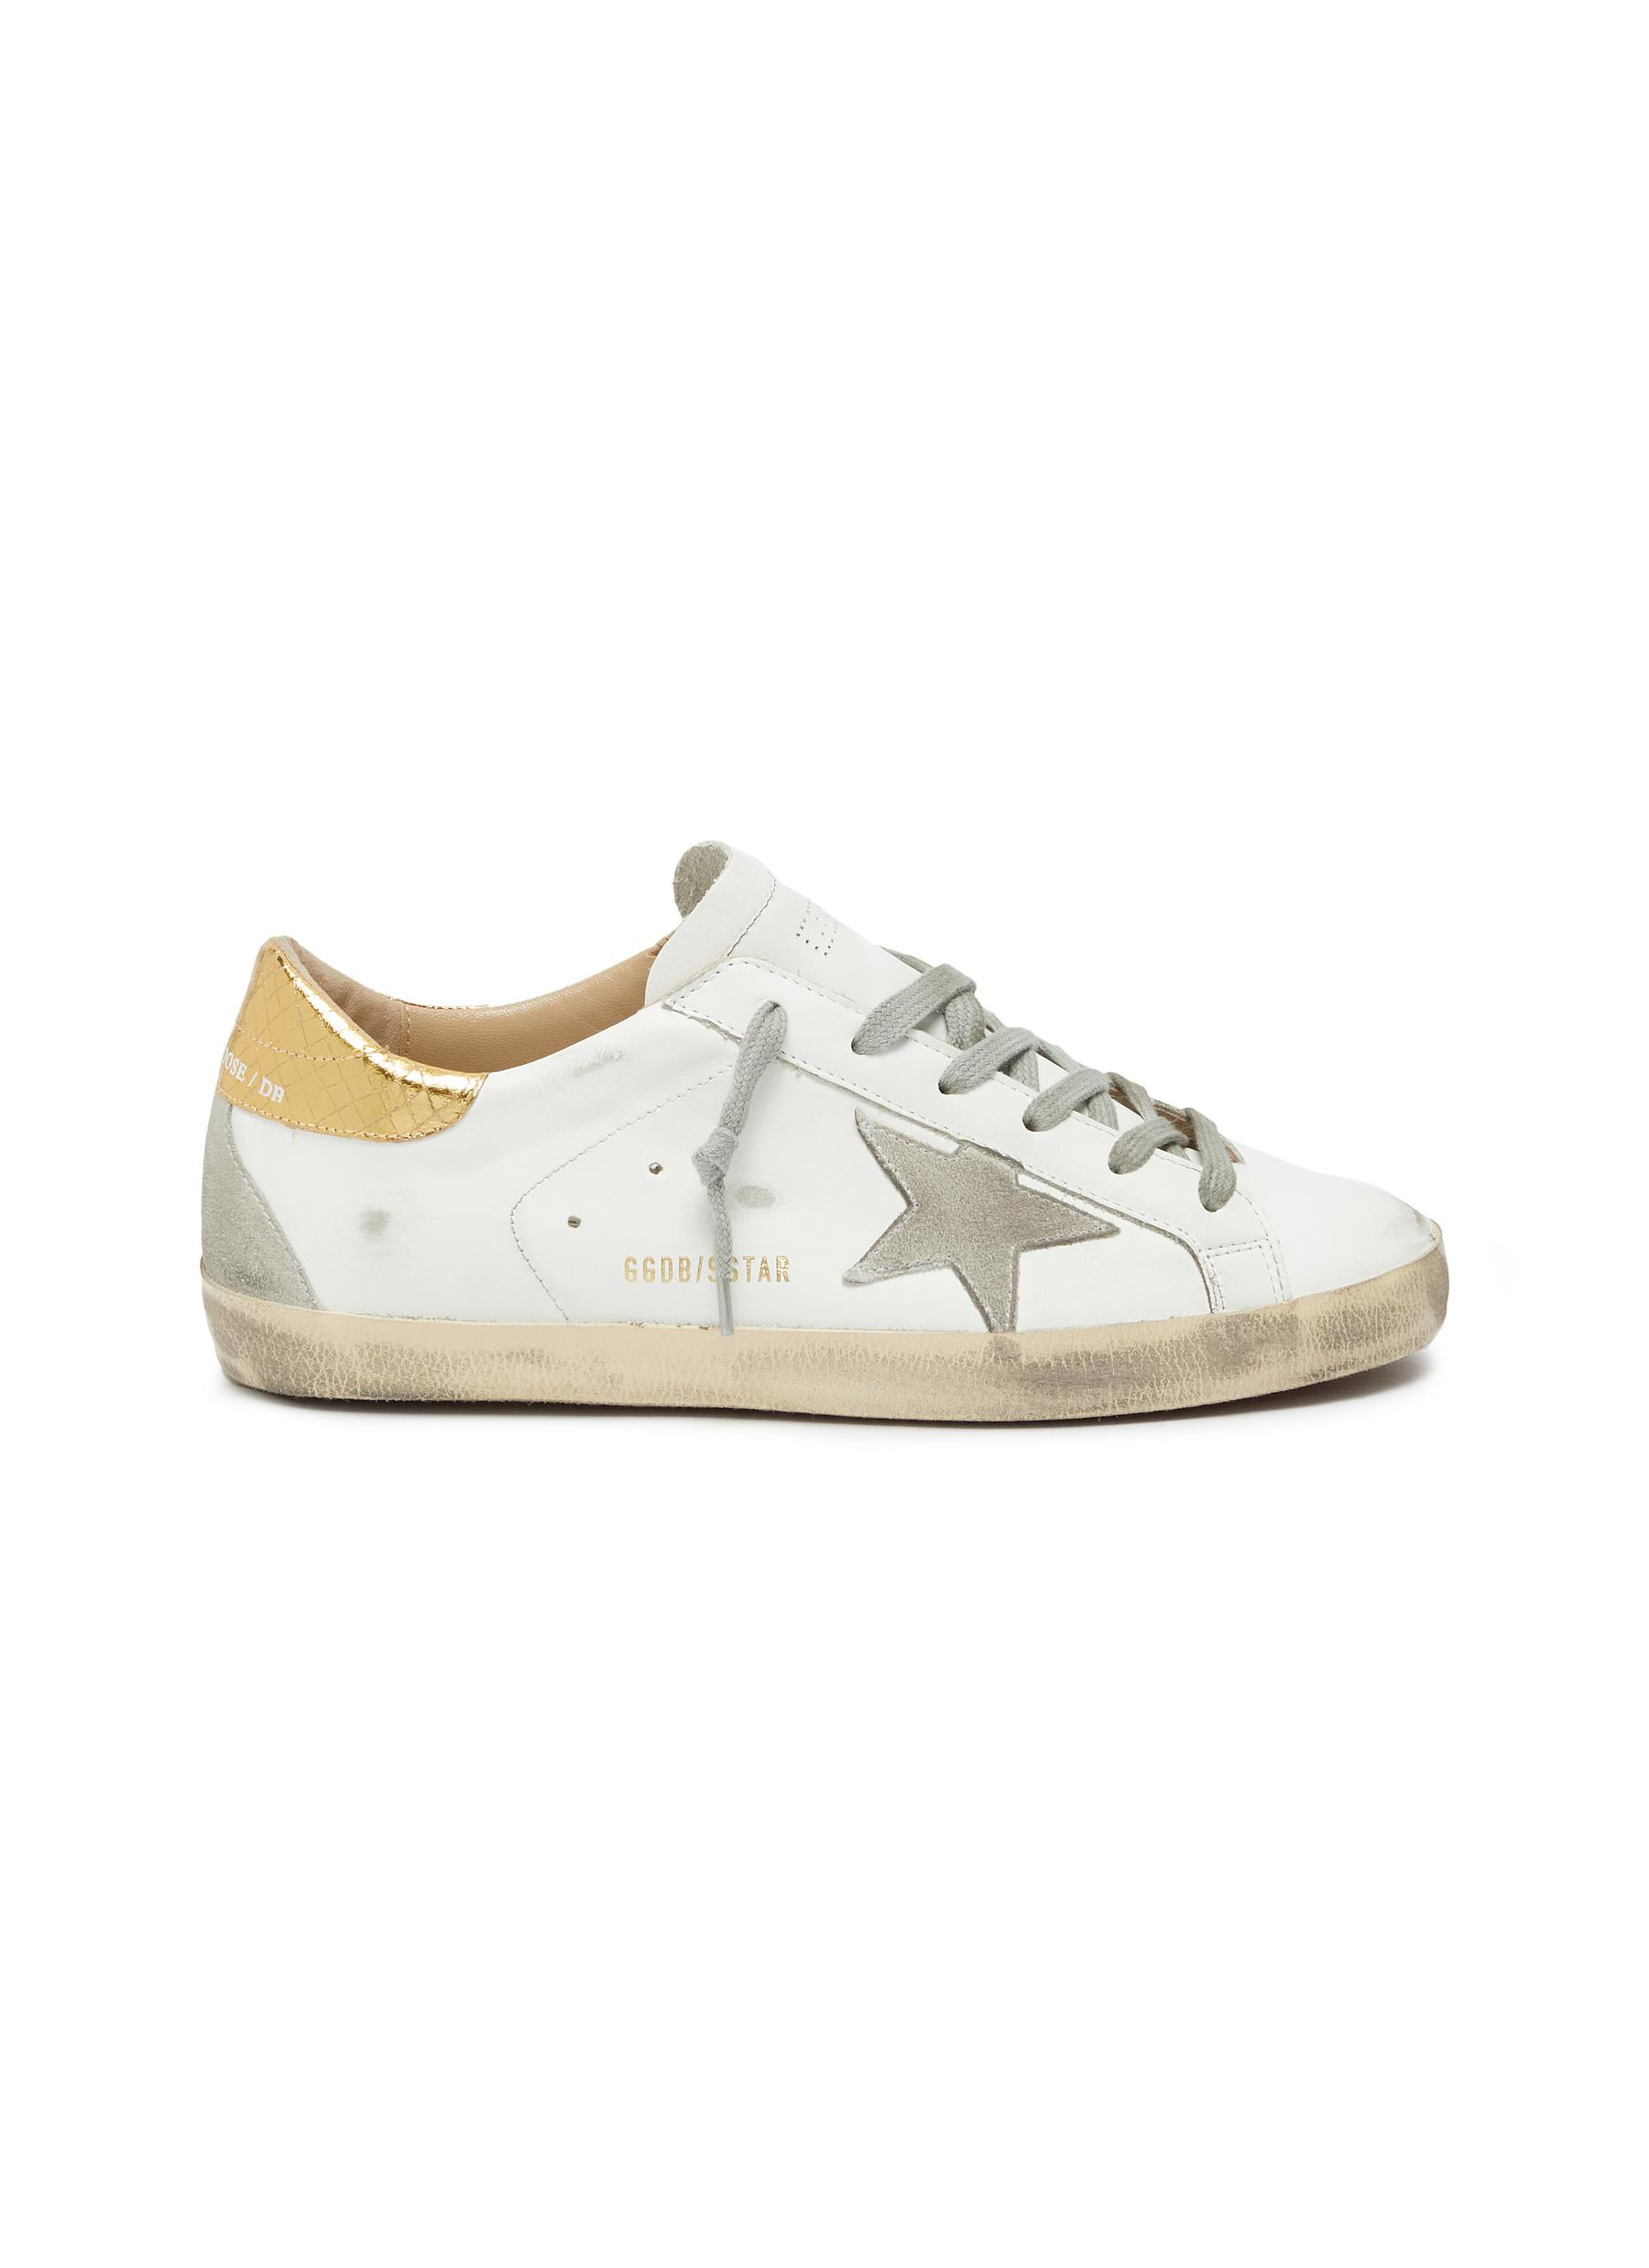 Superstar embossed collar leather sneakers by Golden Goose